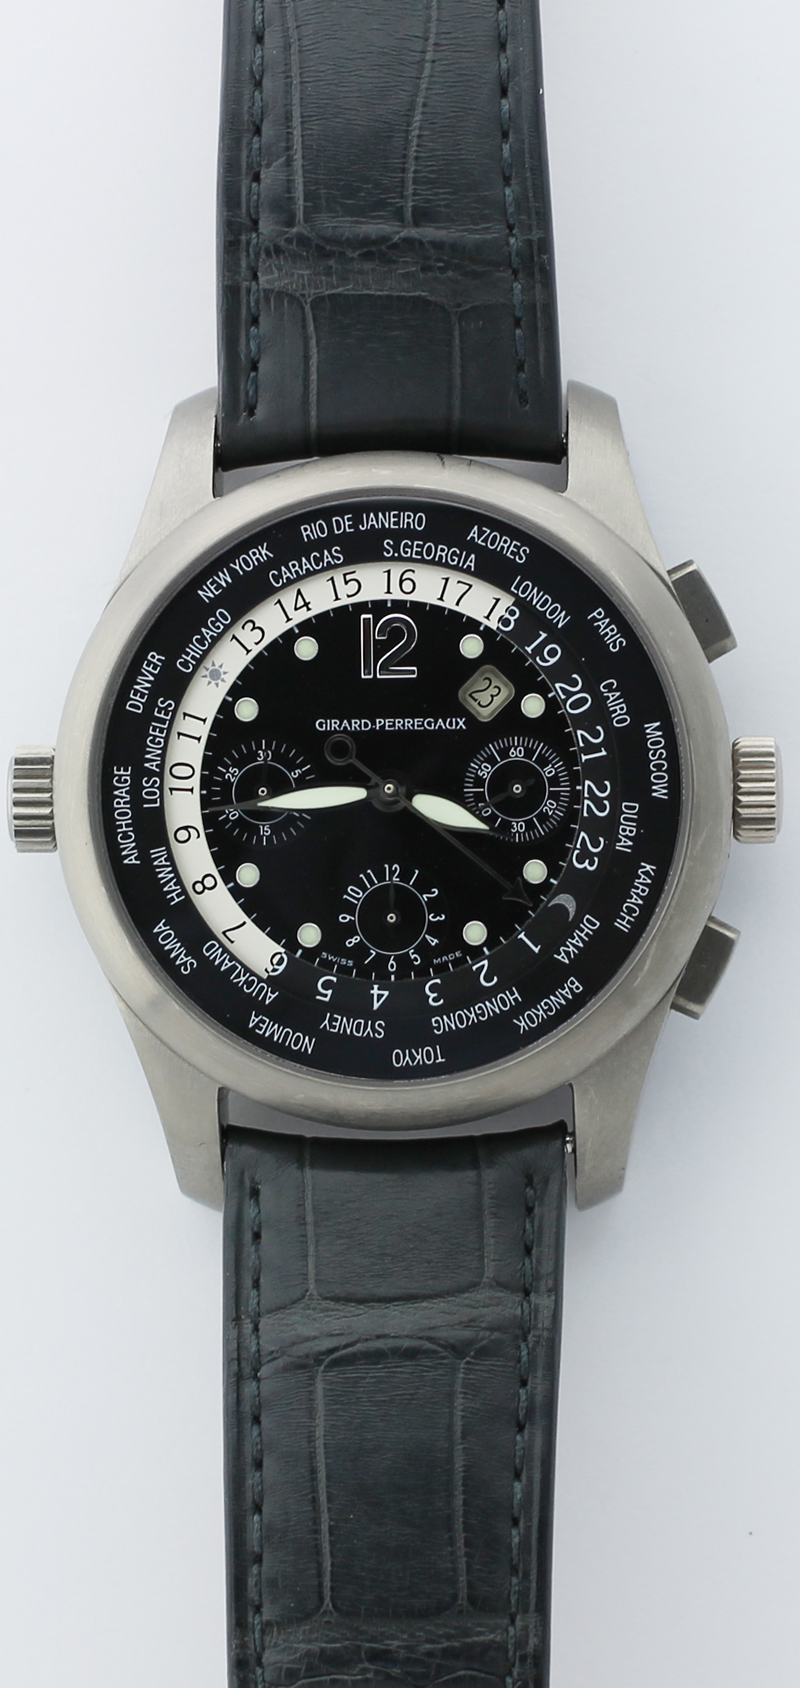 Girard-Perregaux World Time Titanium Chronograph 4980